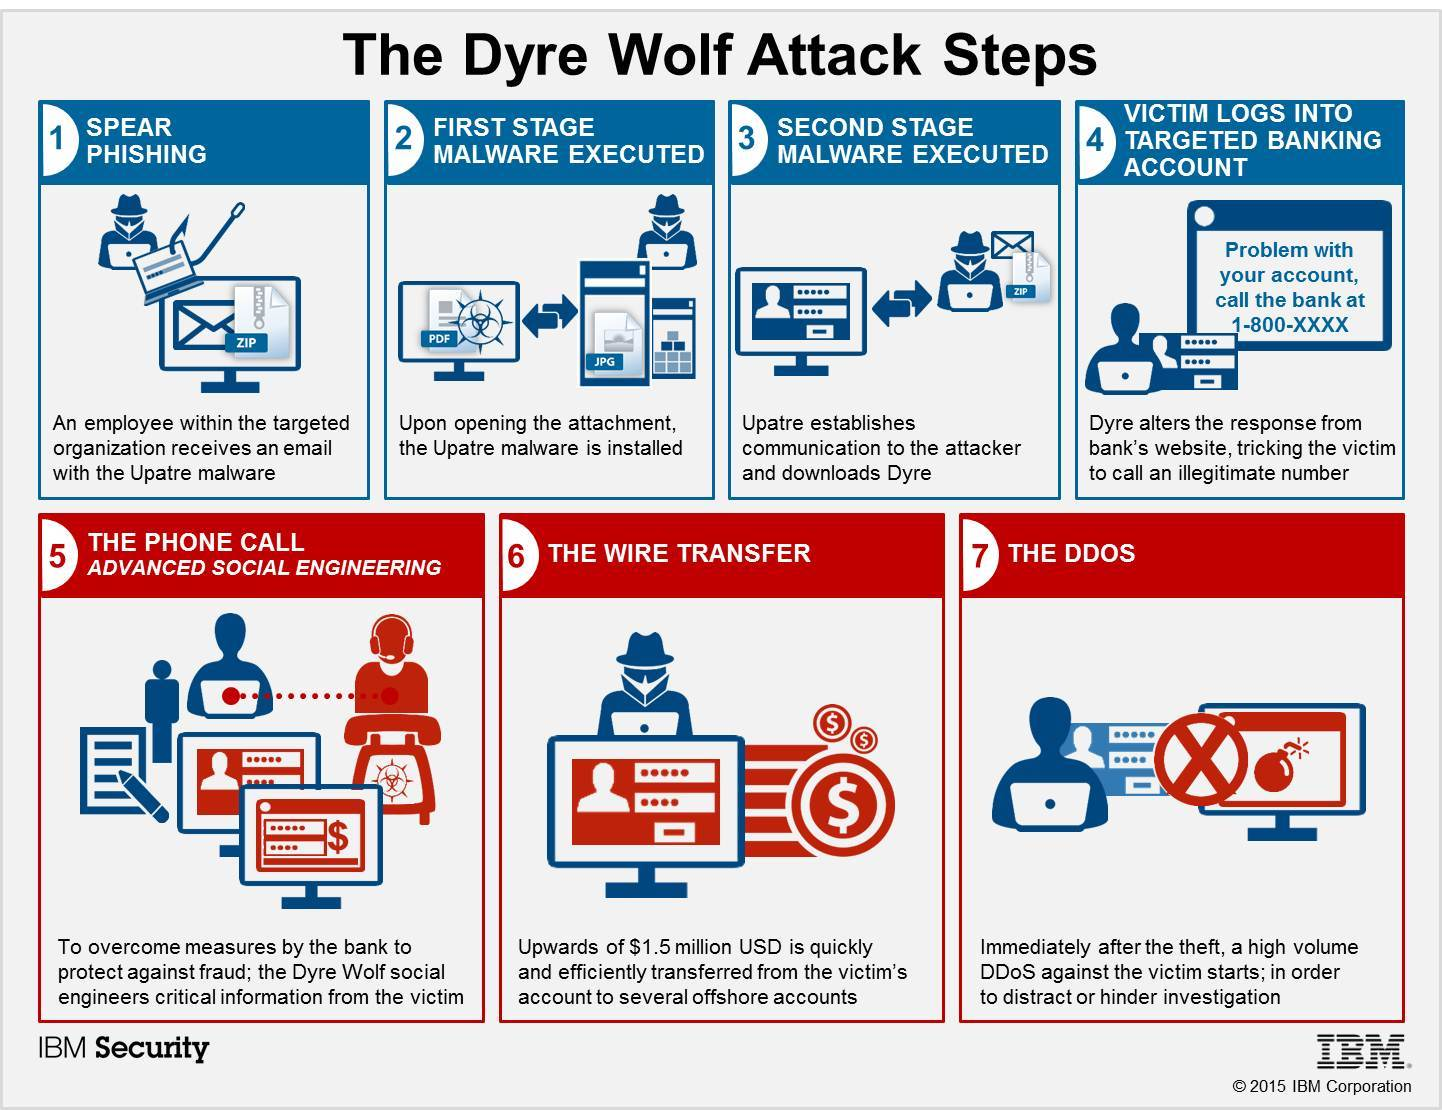 dyre-wolf-malware-bypasses-2-factor-authentication-security-steals-1million-2